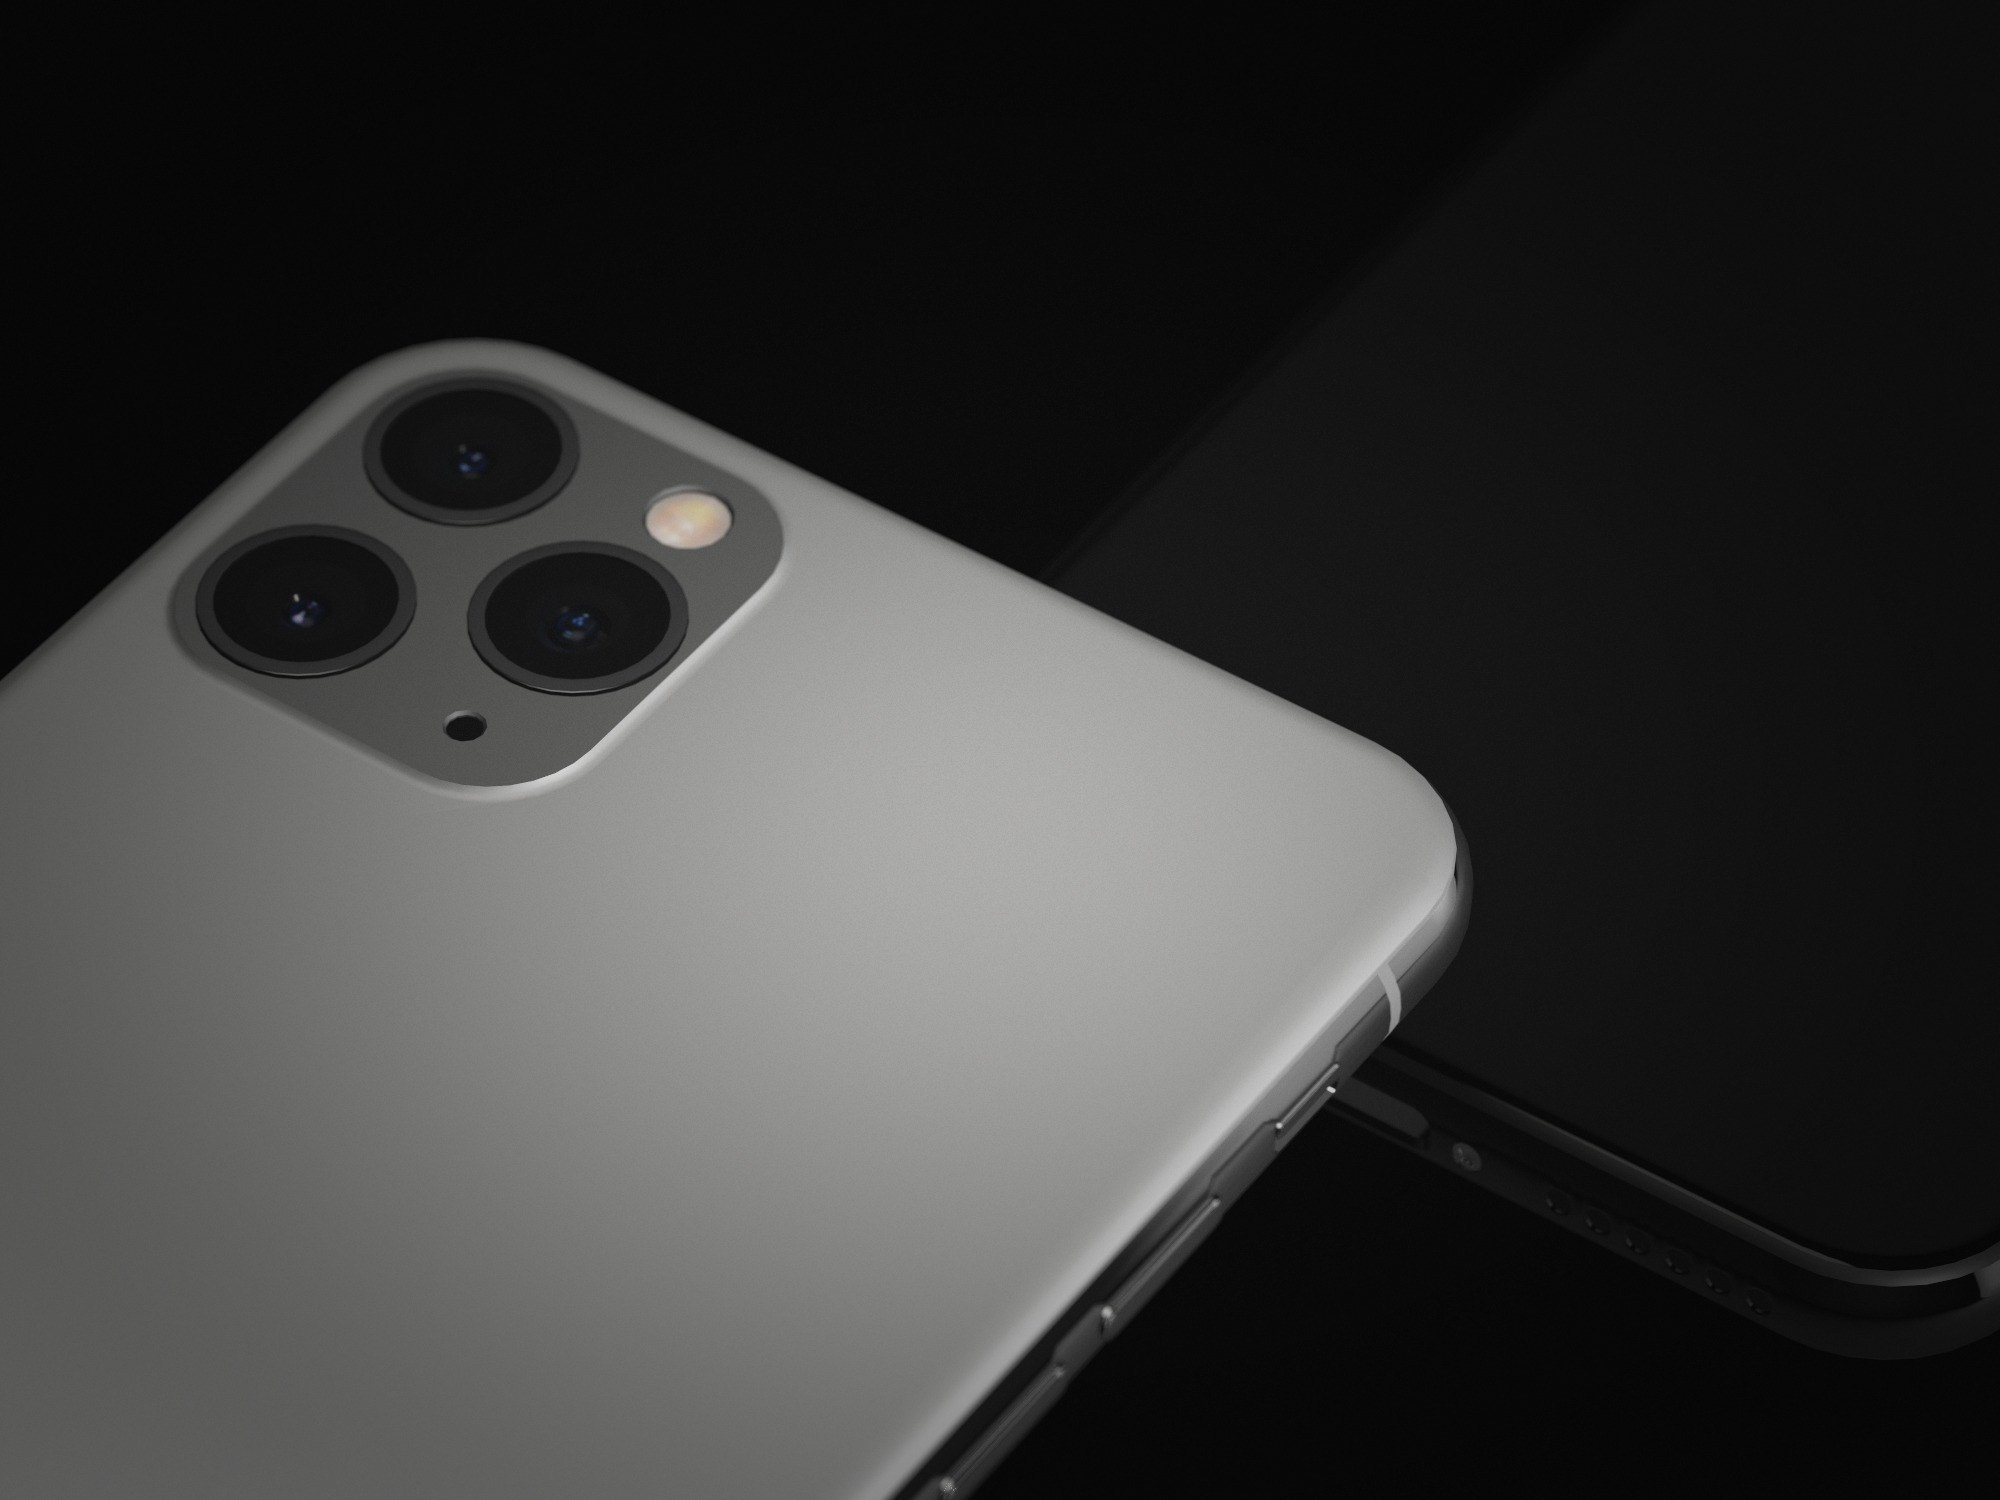 Dark iPhone 11 Pro Mockup - 3D design by Vectary templates Sep 18, 2019